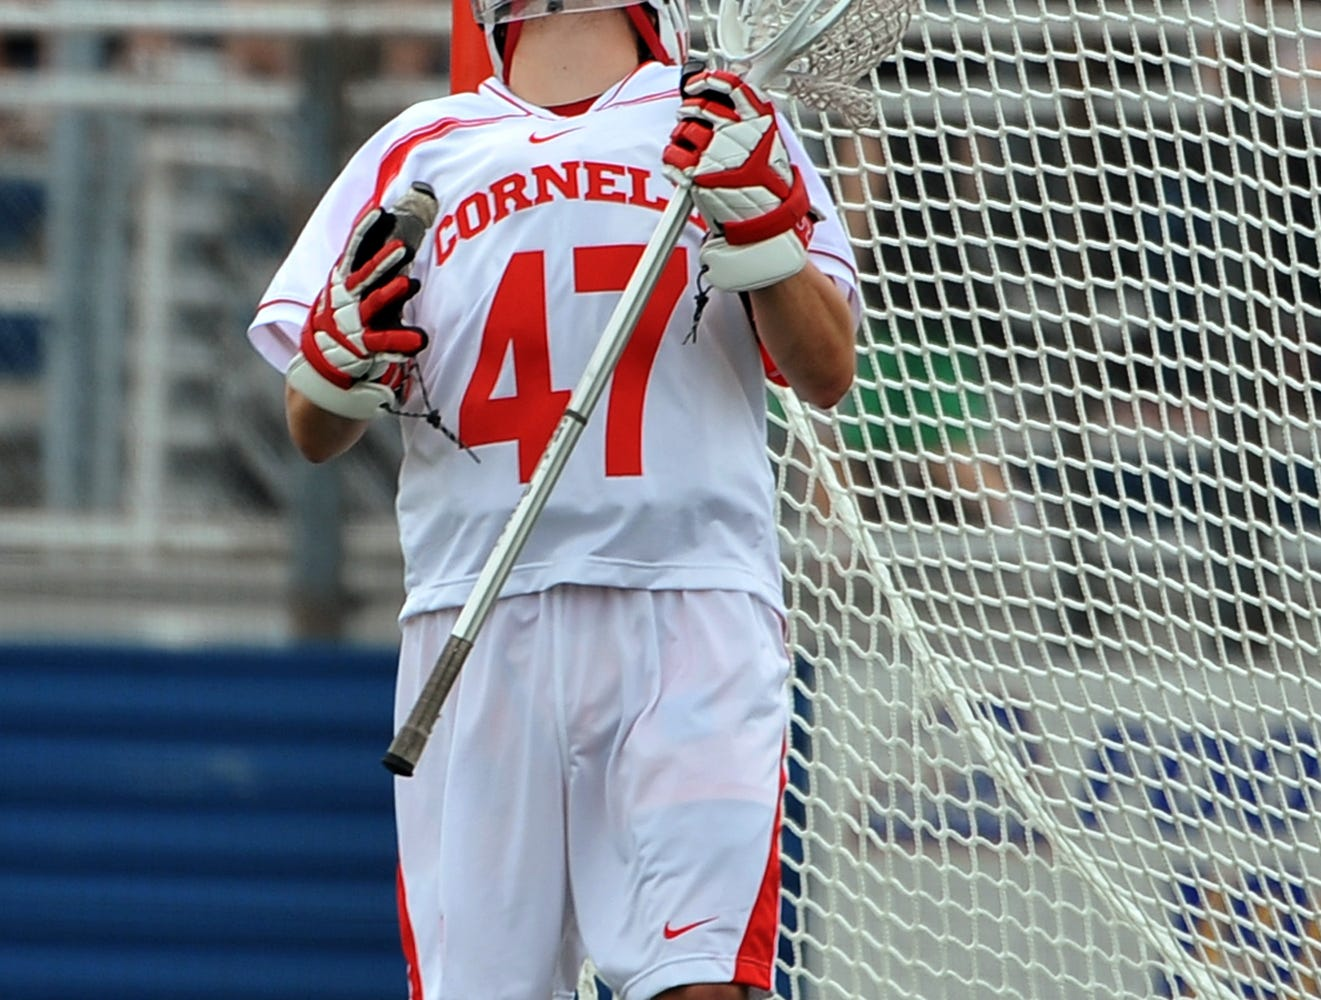 Cornell goalie Aj Fiore reacts after Virginia's Chris LaPierre scored during the second period of an NCAA Division I men's lacrosse tournament quarterfinal at Hofstra University on Saturday, May 21, 2011, in Hempstead, N.Y. Virginia won 13-9.